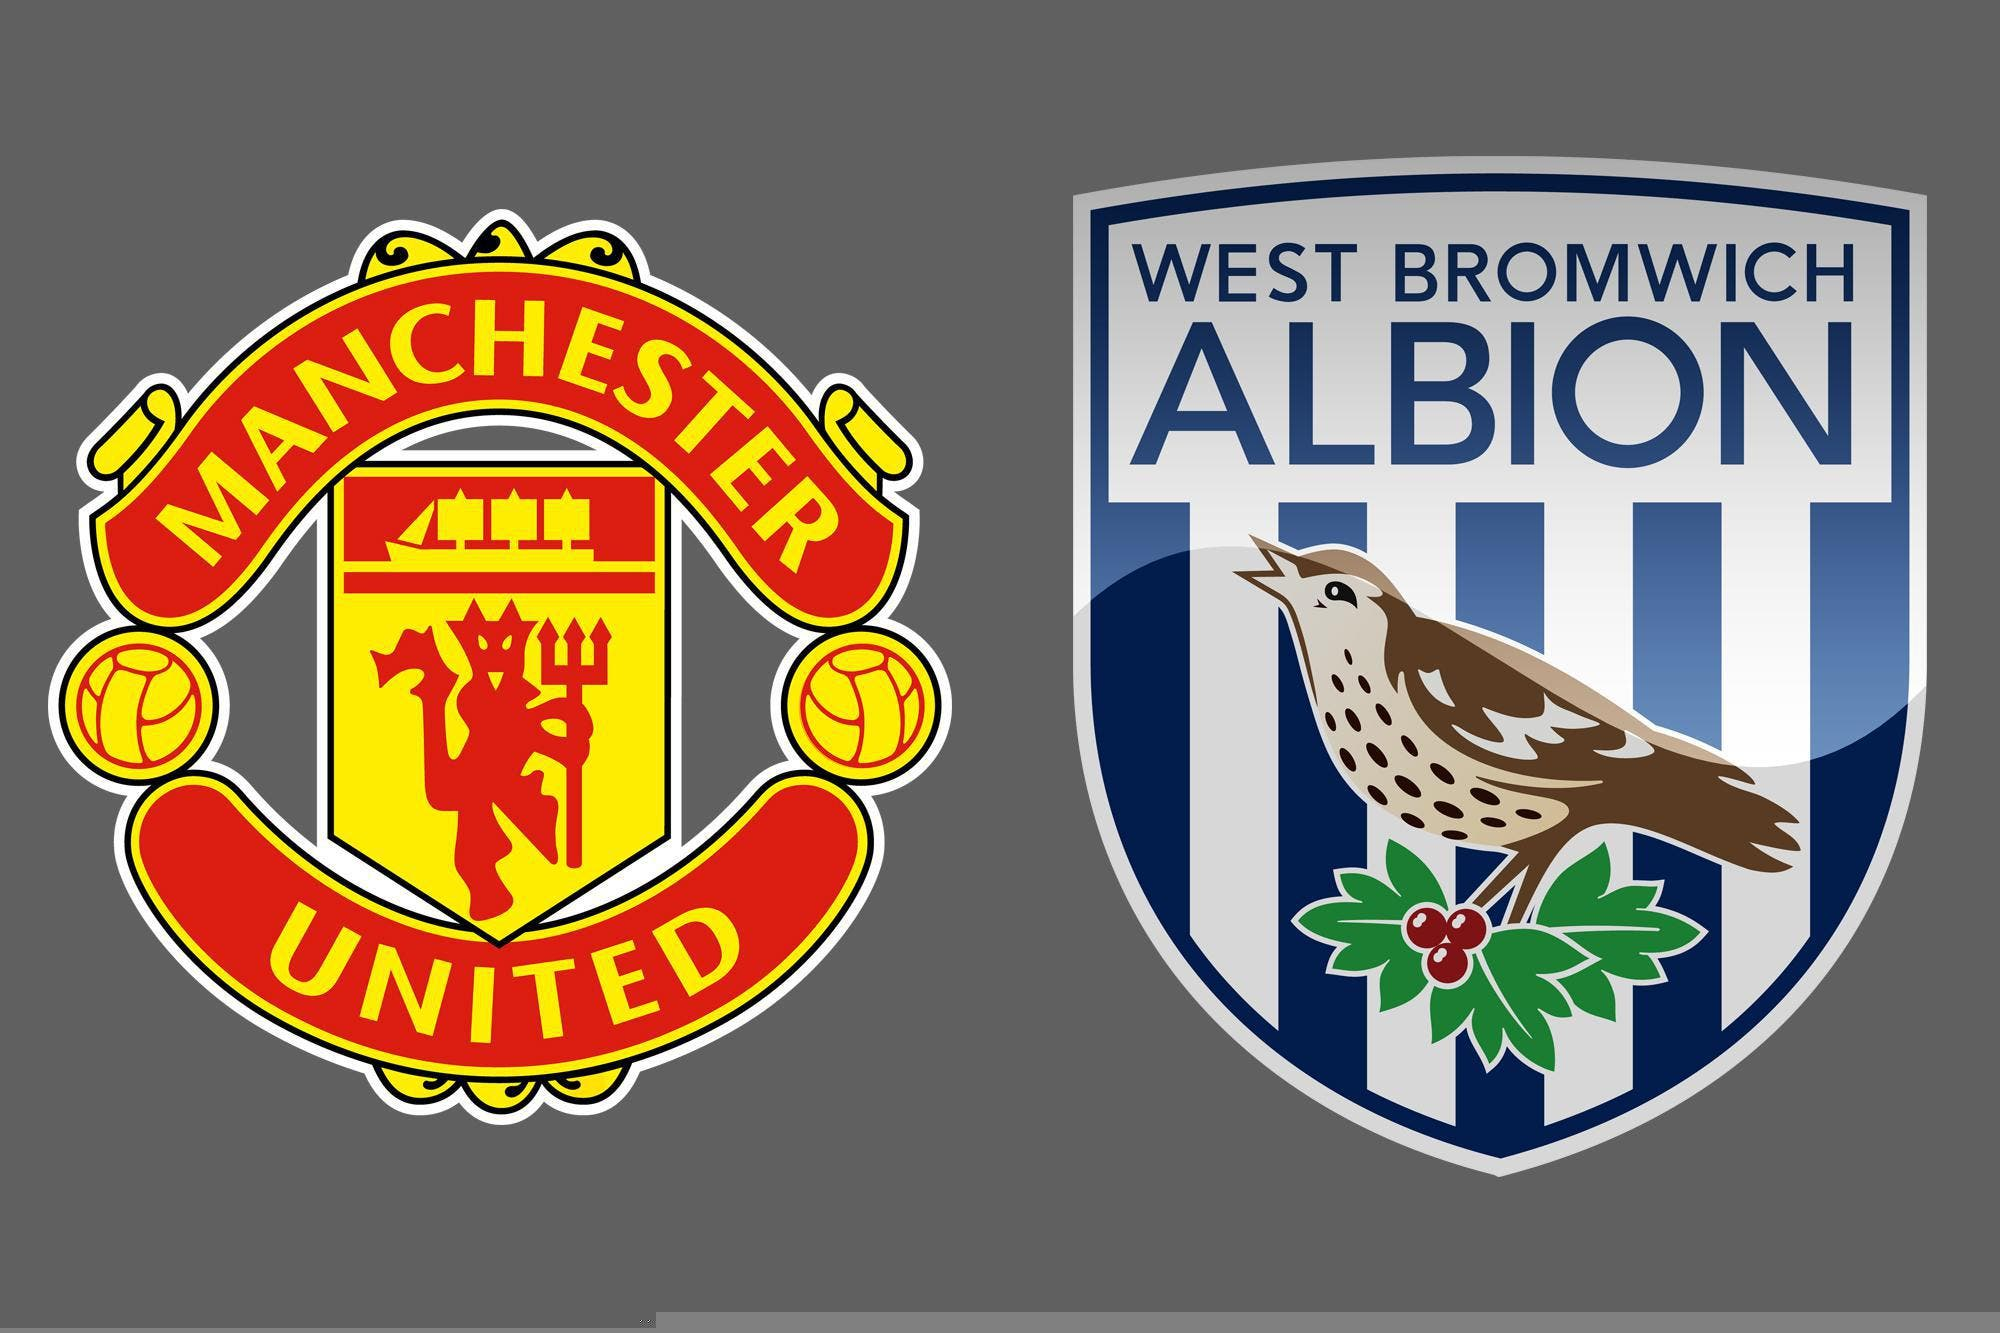 Premier League de Inglaterra: Manchester United venció por 1-0 a West Bromwich Albion como local